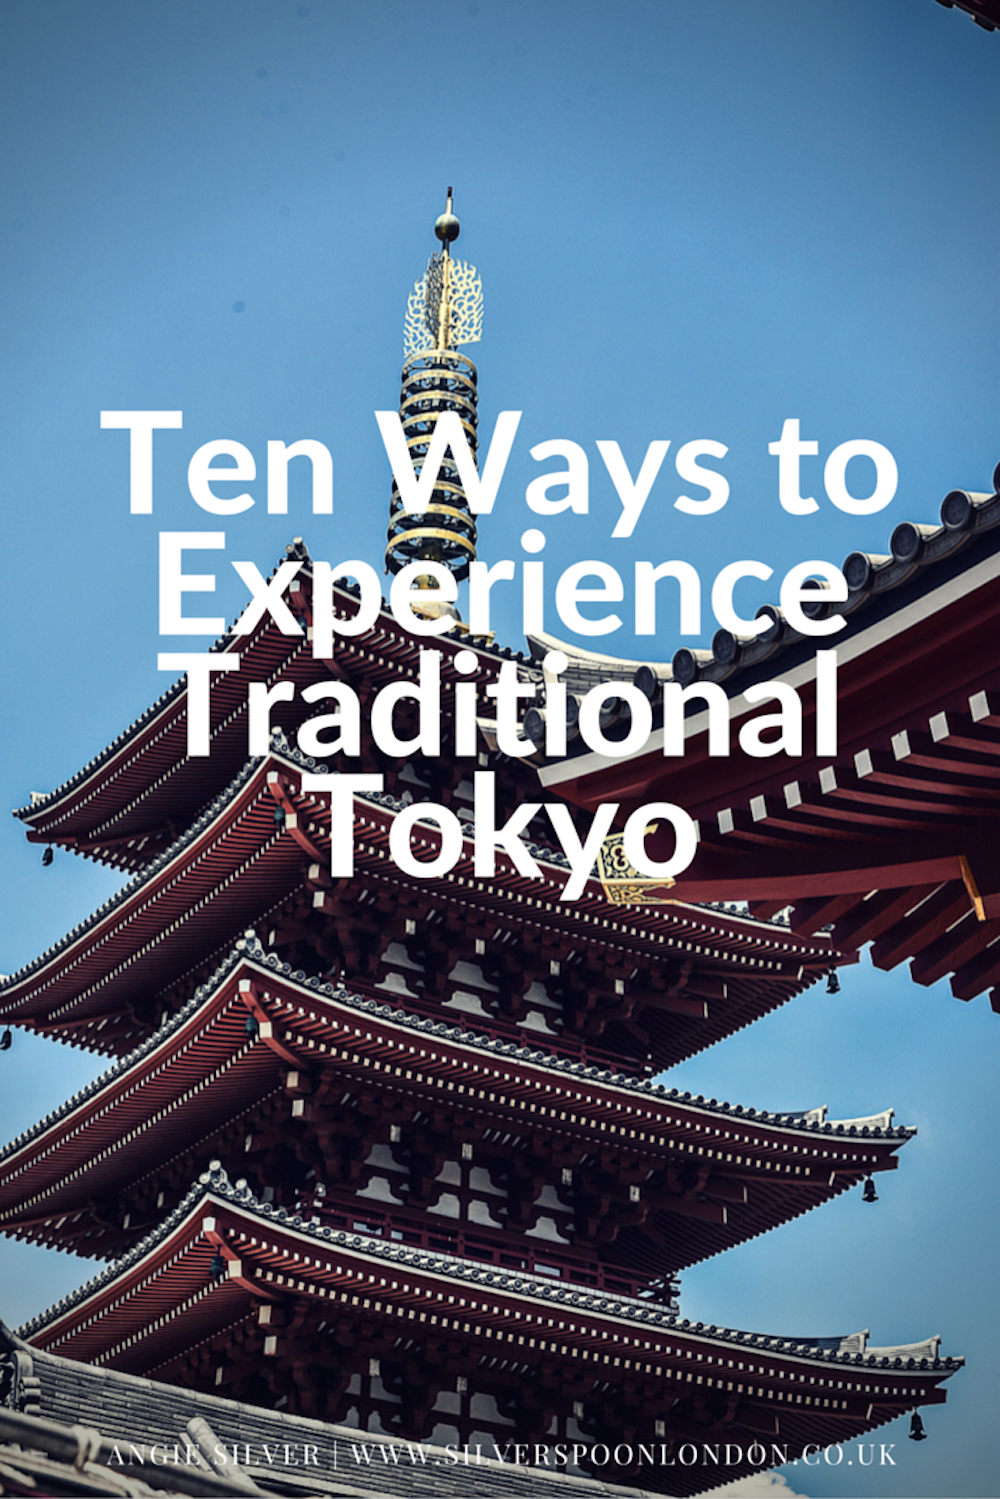 Ten Ways to Experience Traditional Tokyo